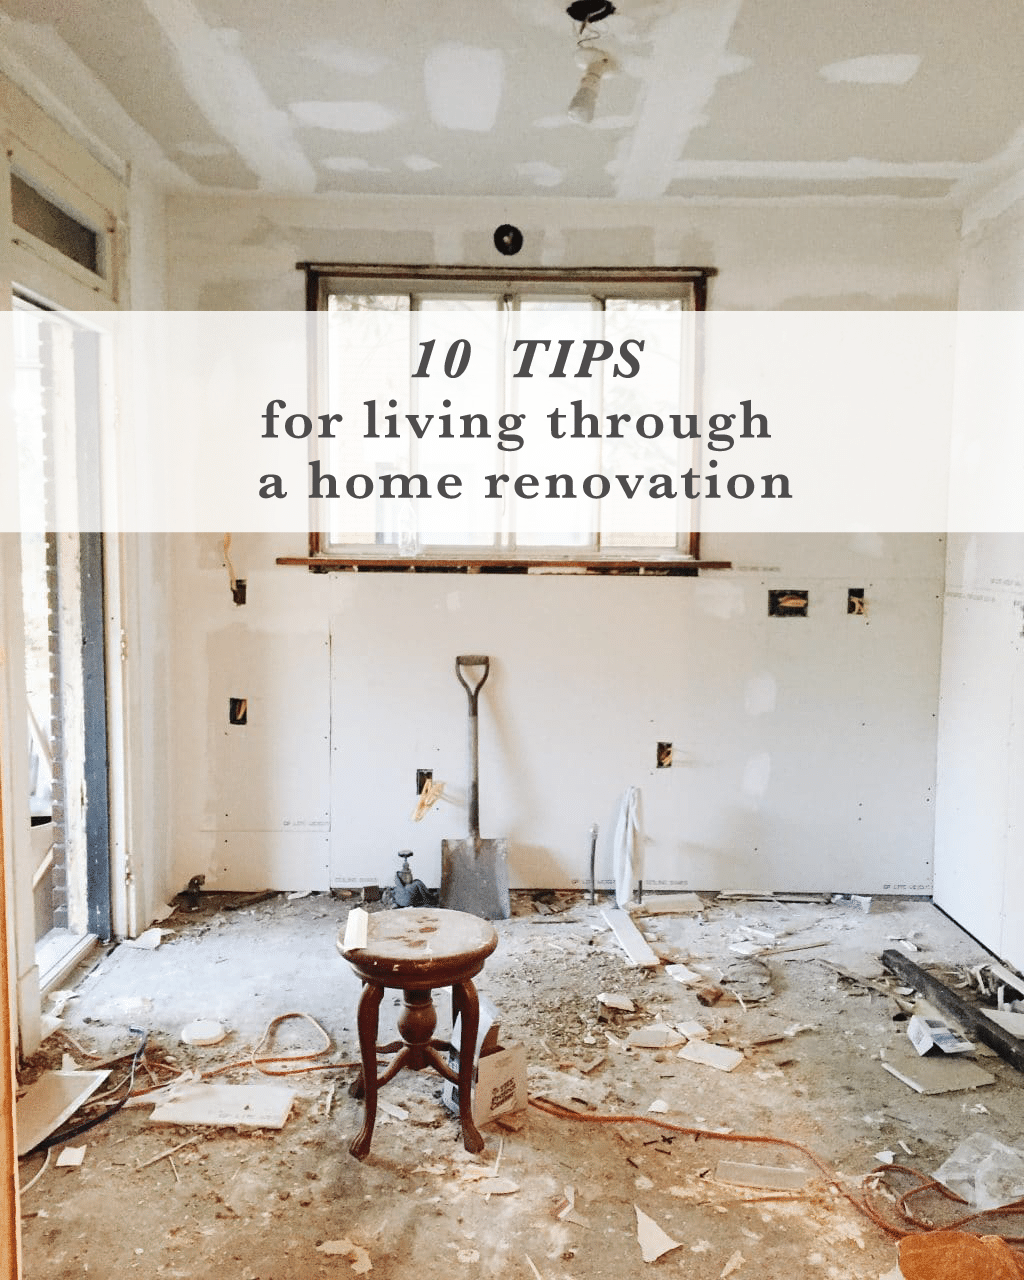 10 Tips for Living Through a Home Renovation - Chris Loves Julia